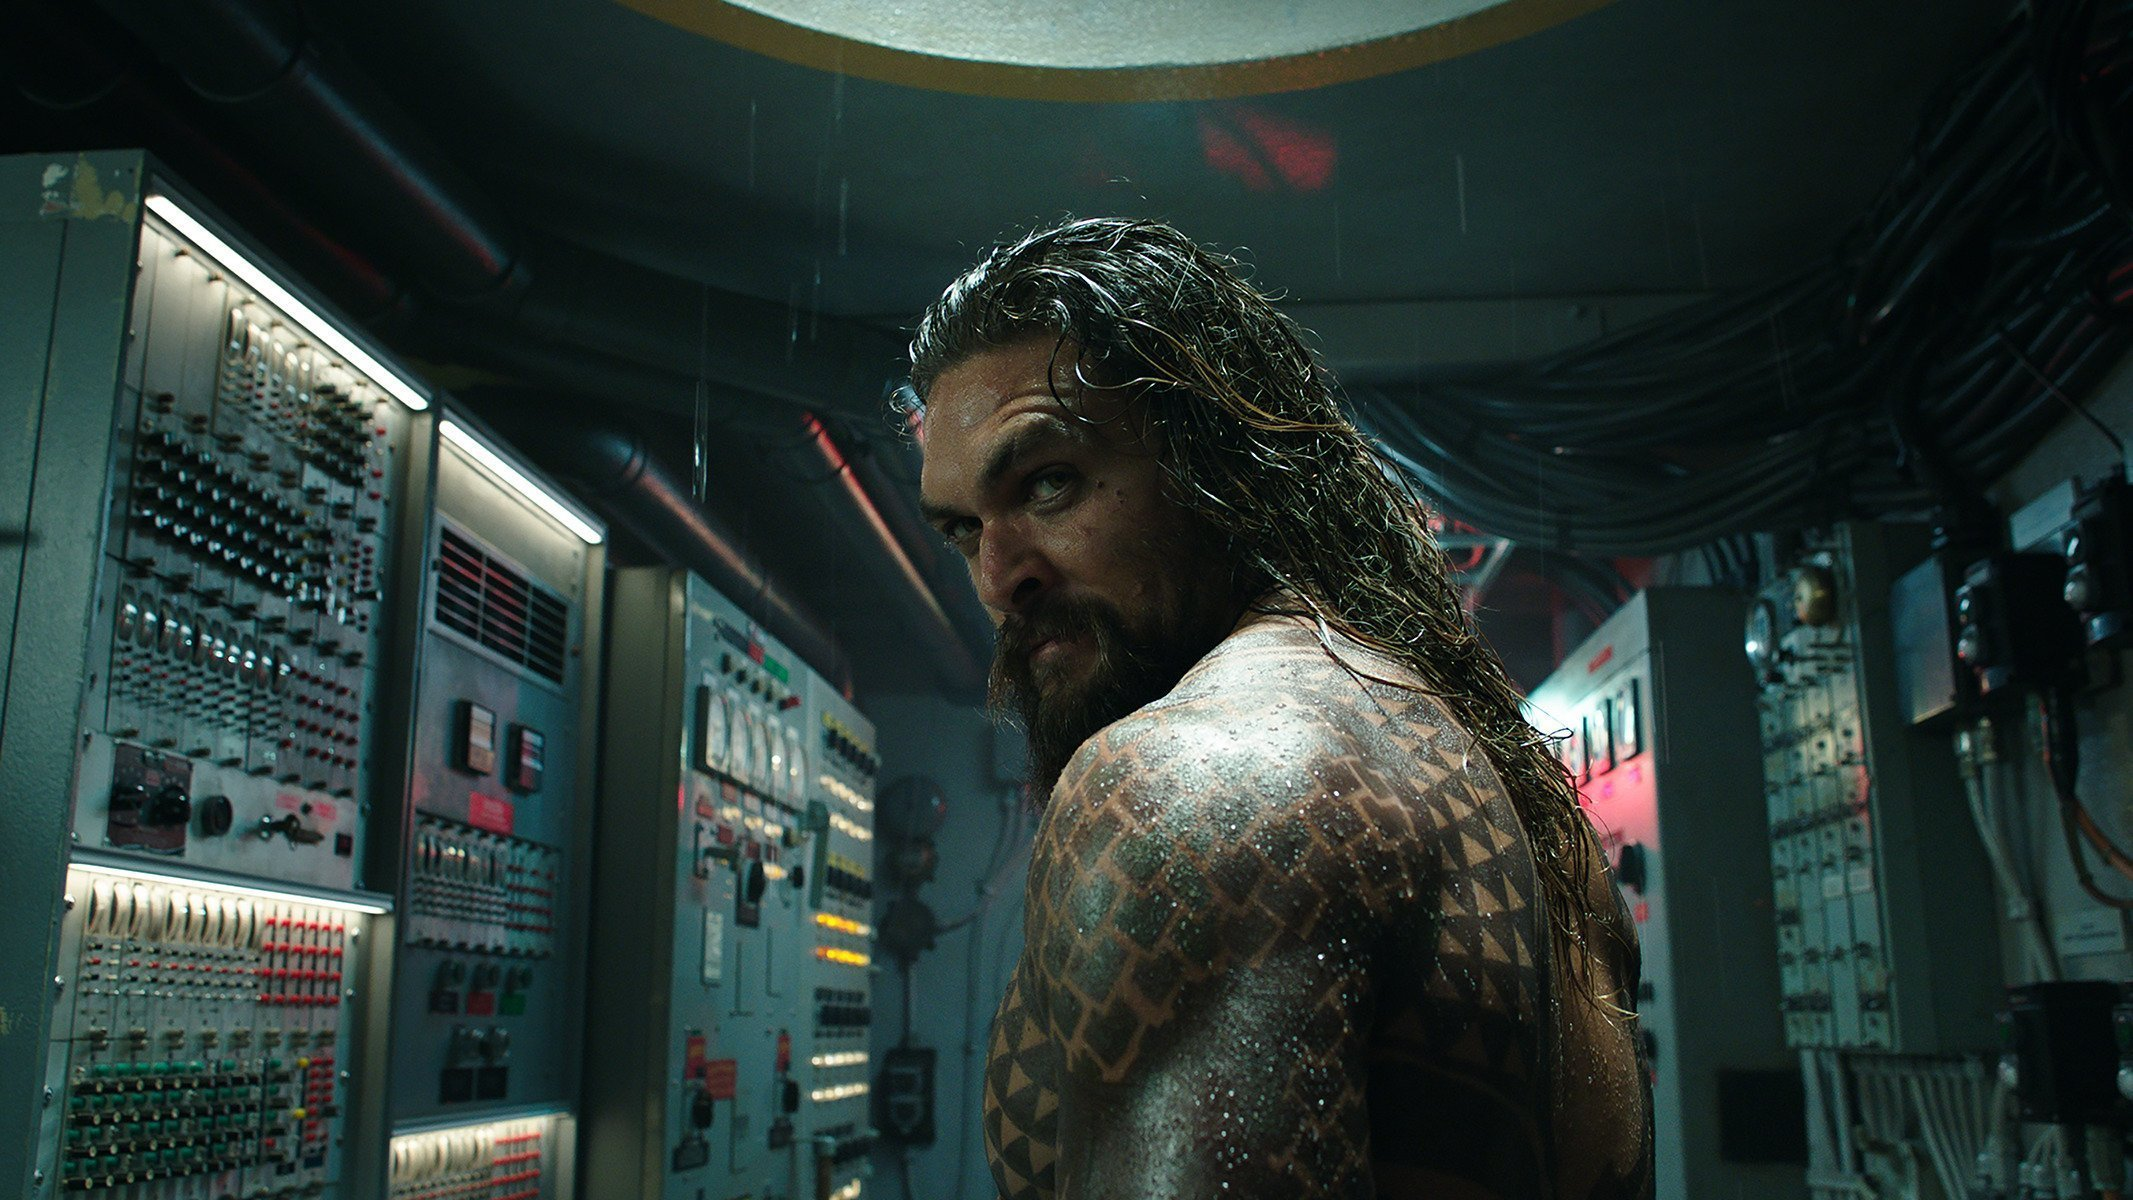 Photo du film Aquaman réalisé par James Wan avec Jason Momoa